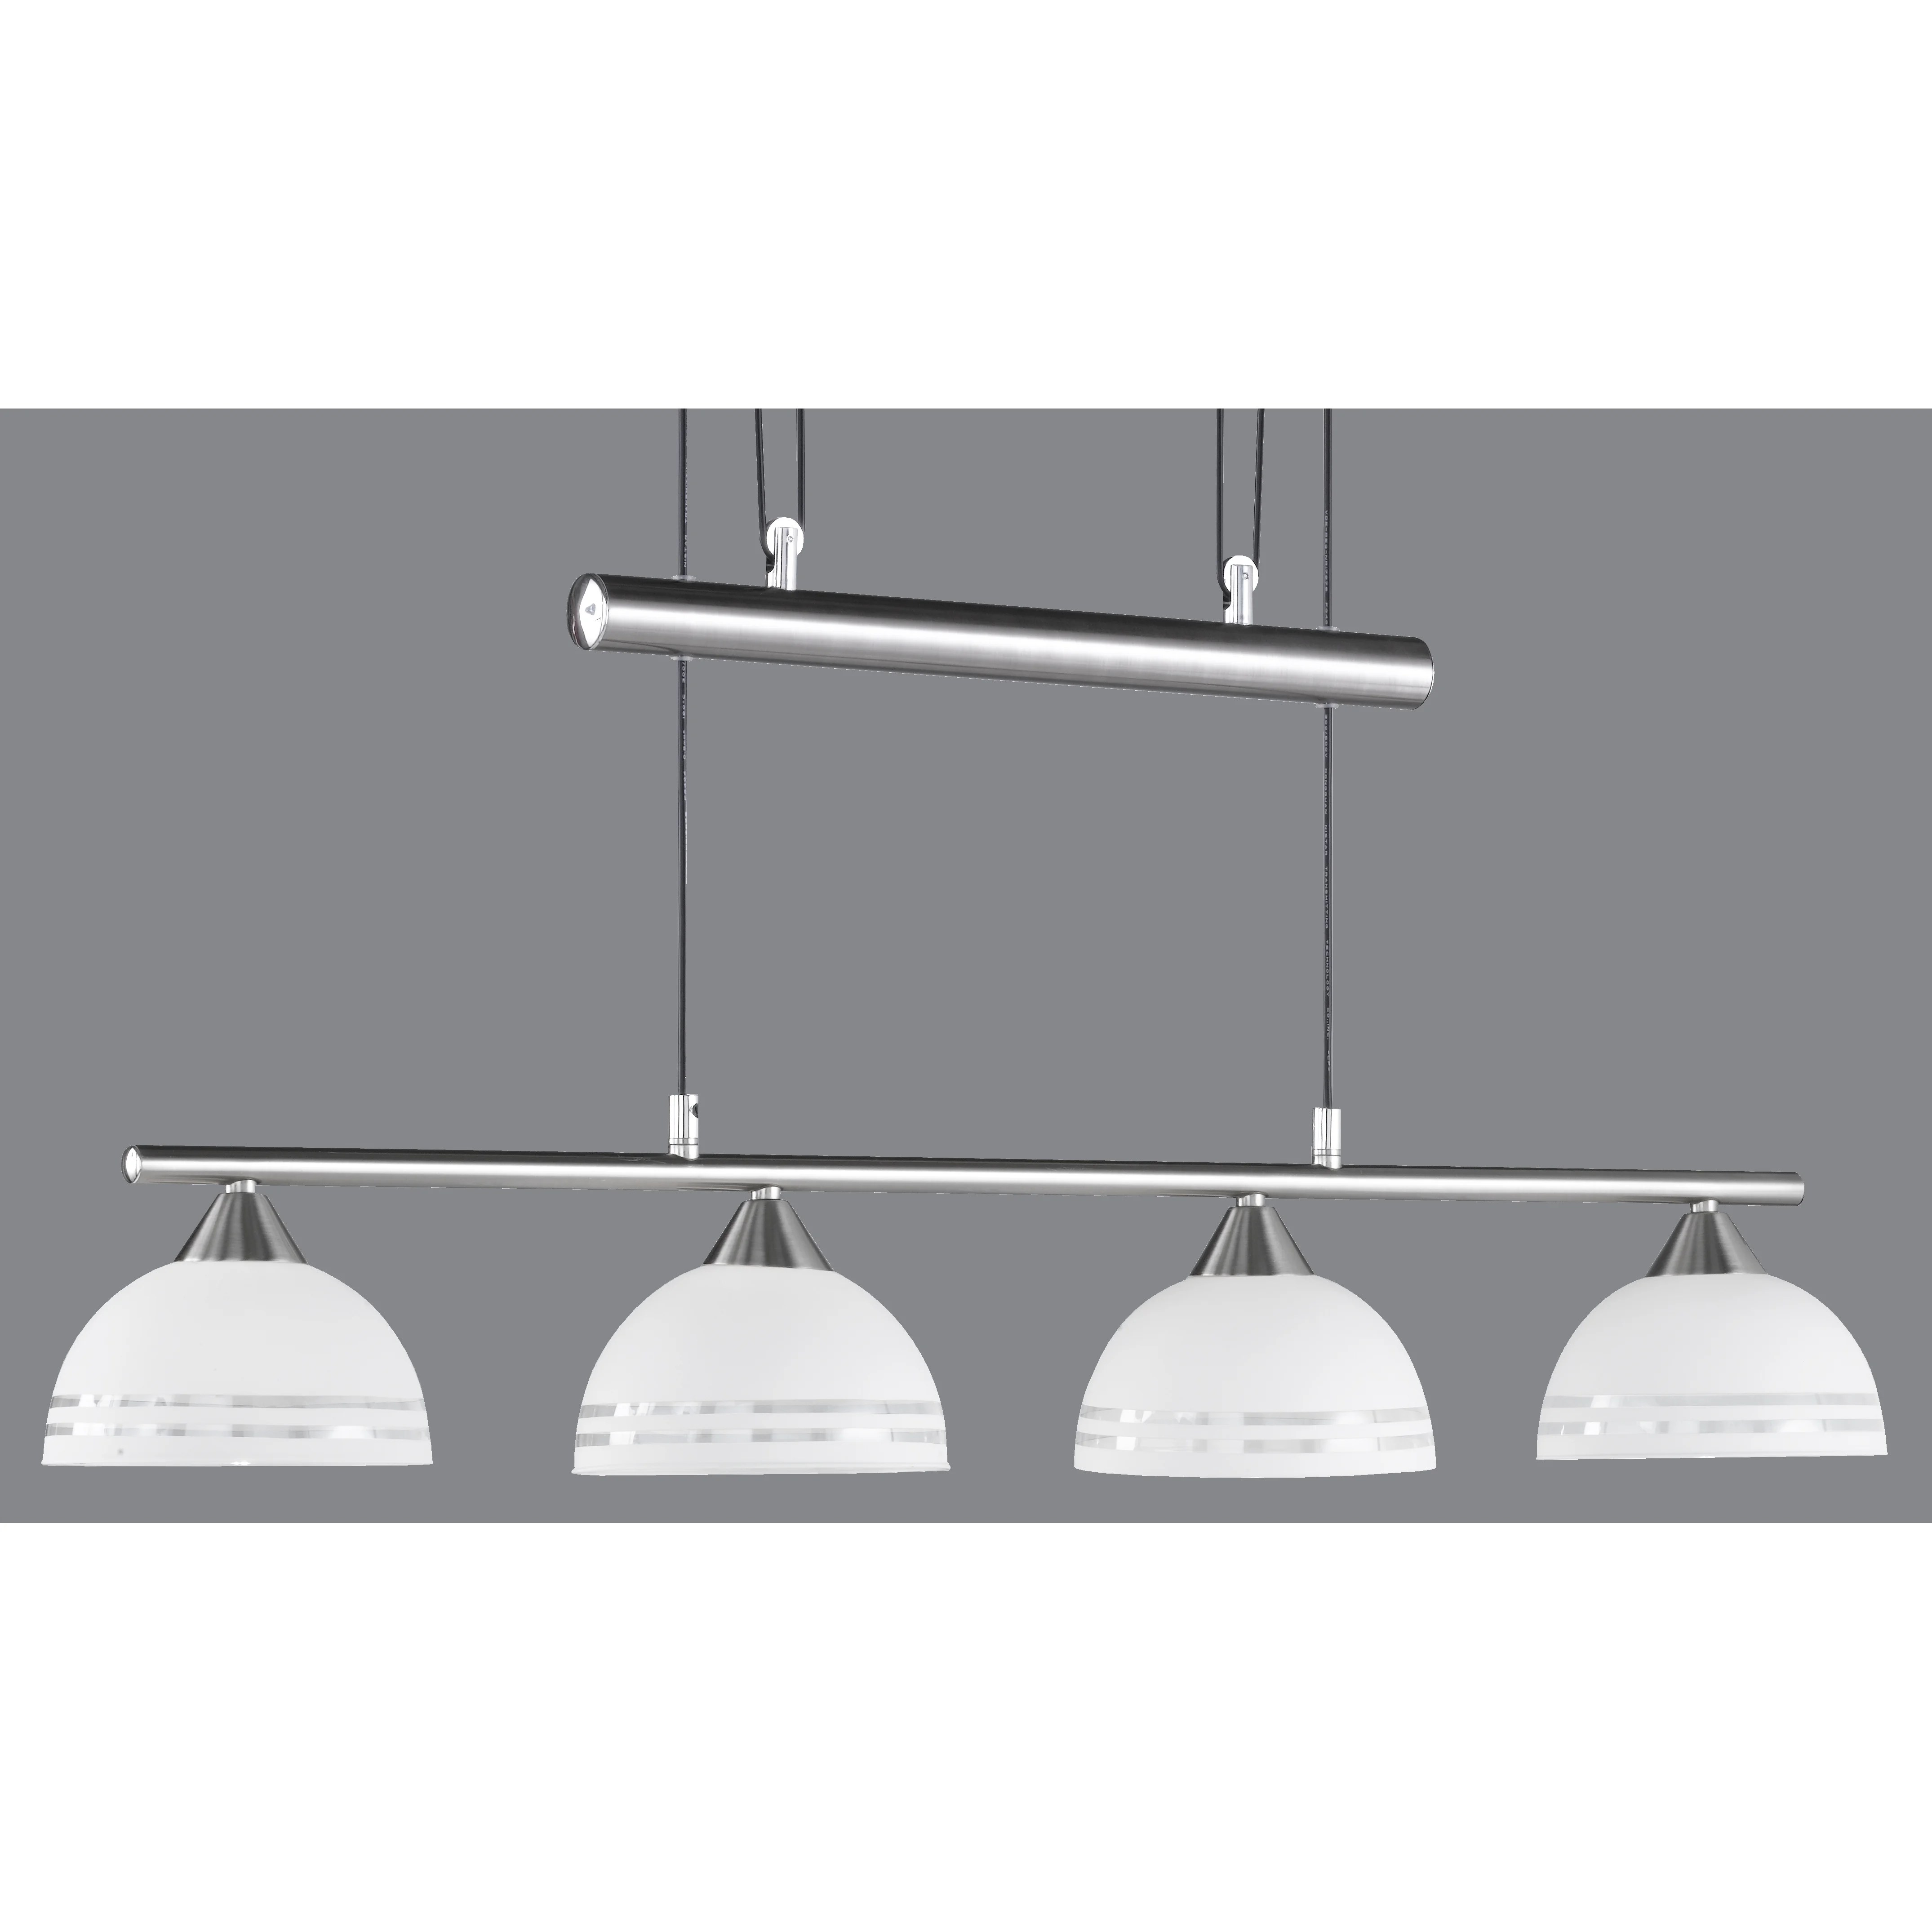 Balken Pendelleuchte Trio Balken Pendelleuchte 4 Flammig And Reviews Wayfair De